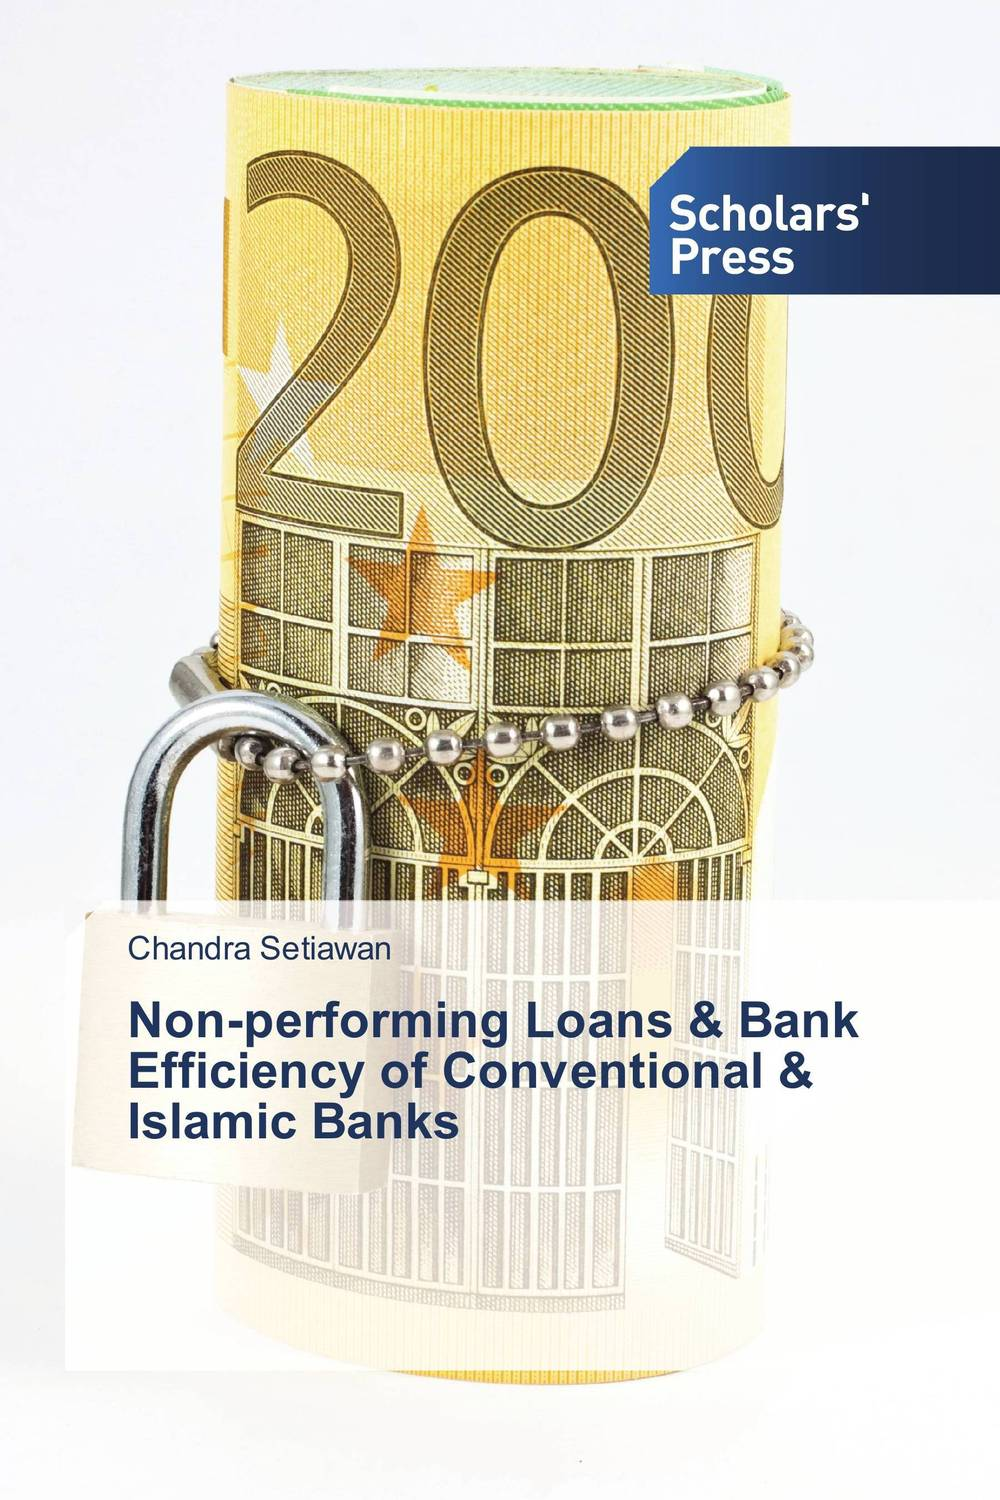 Non-performing Loans & Bank Efficiency of Conventional & Islamic Banks efficiency of conventional versus islamic banks